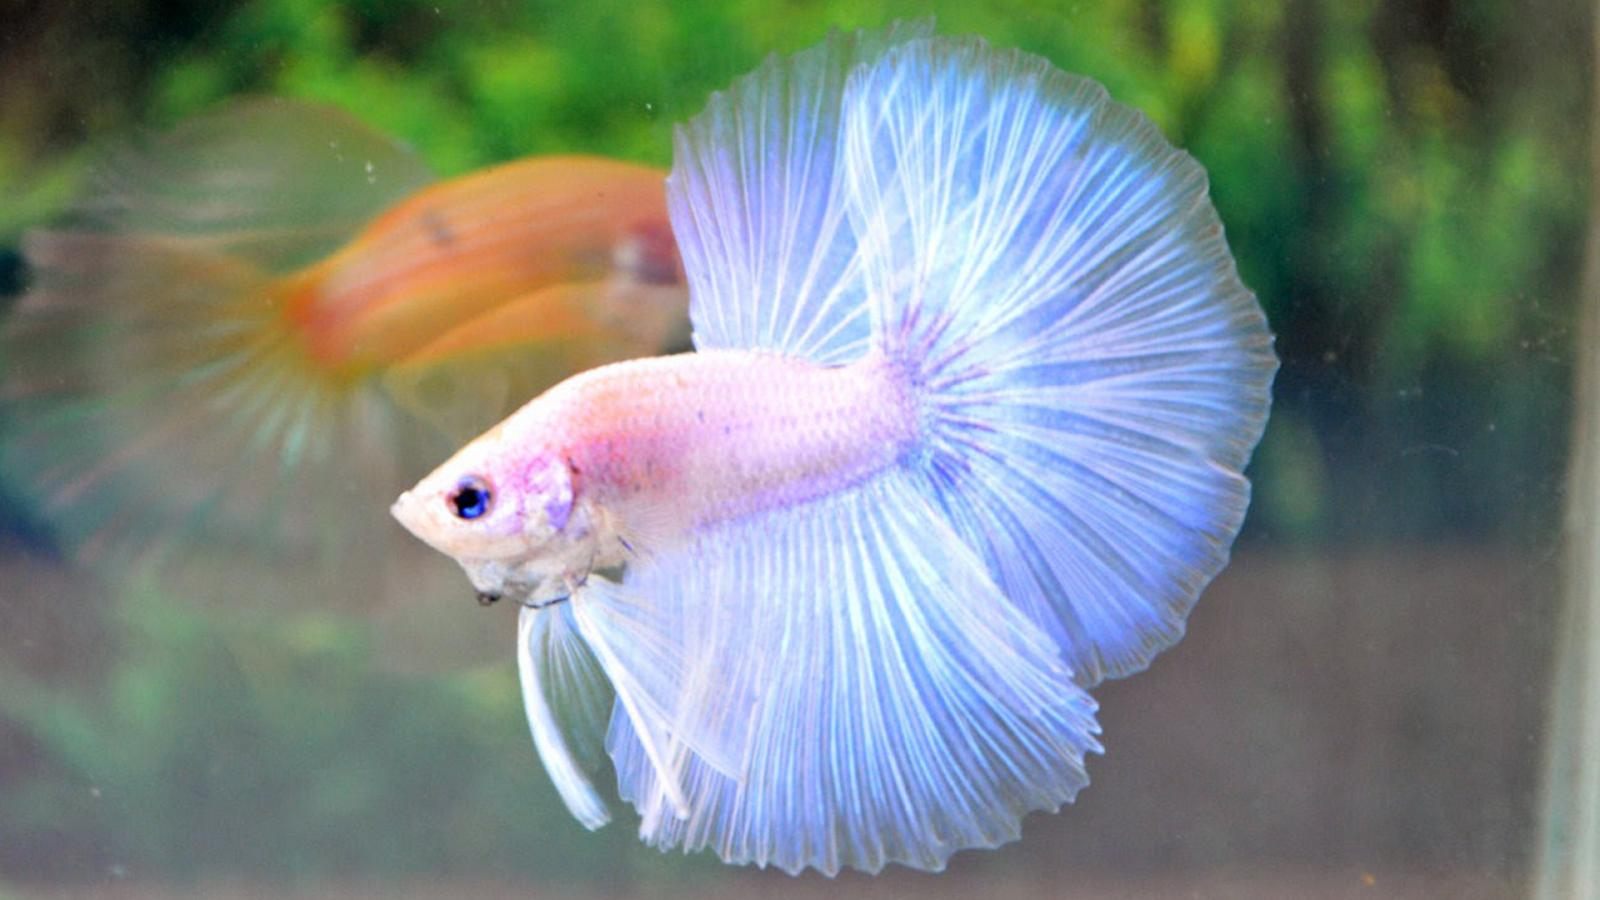 Pink Cute Wallpaper For Iphone 5 Albino Betta Fish Picture 3 Of 20 White Pastel Halfmoon